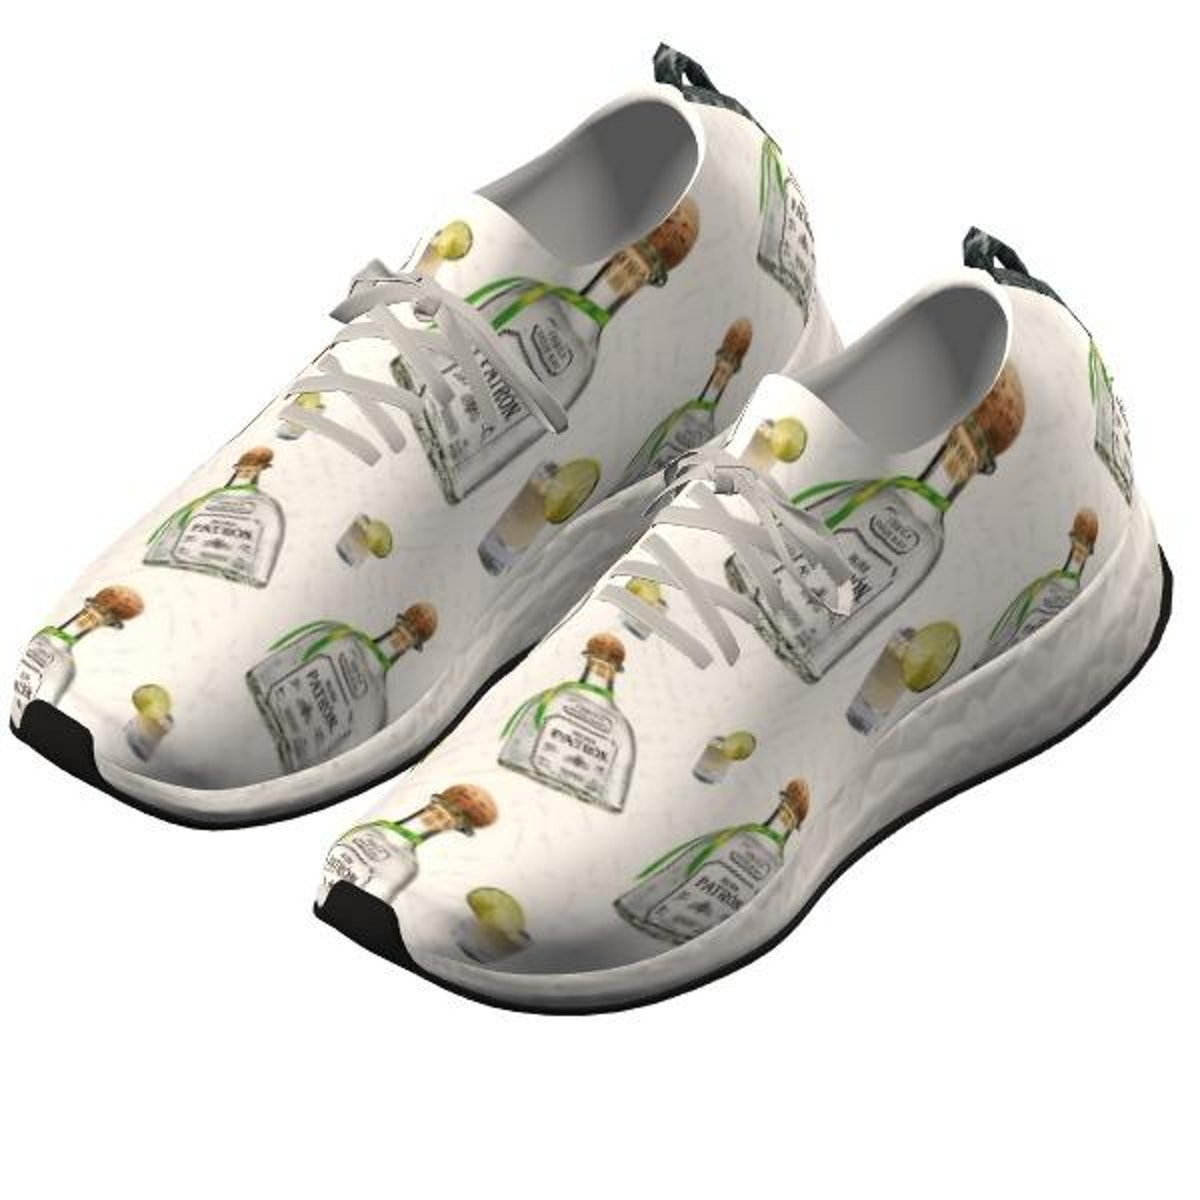 Tequila Connoisseur Sneakers